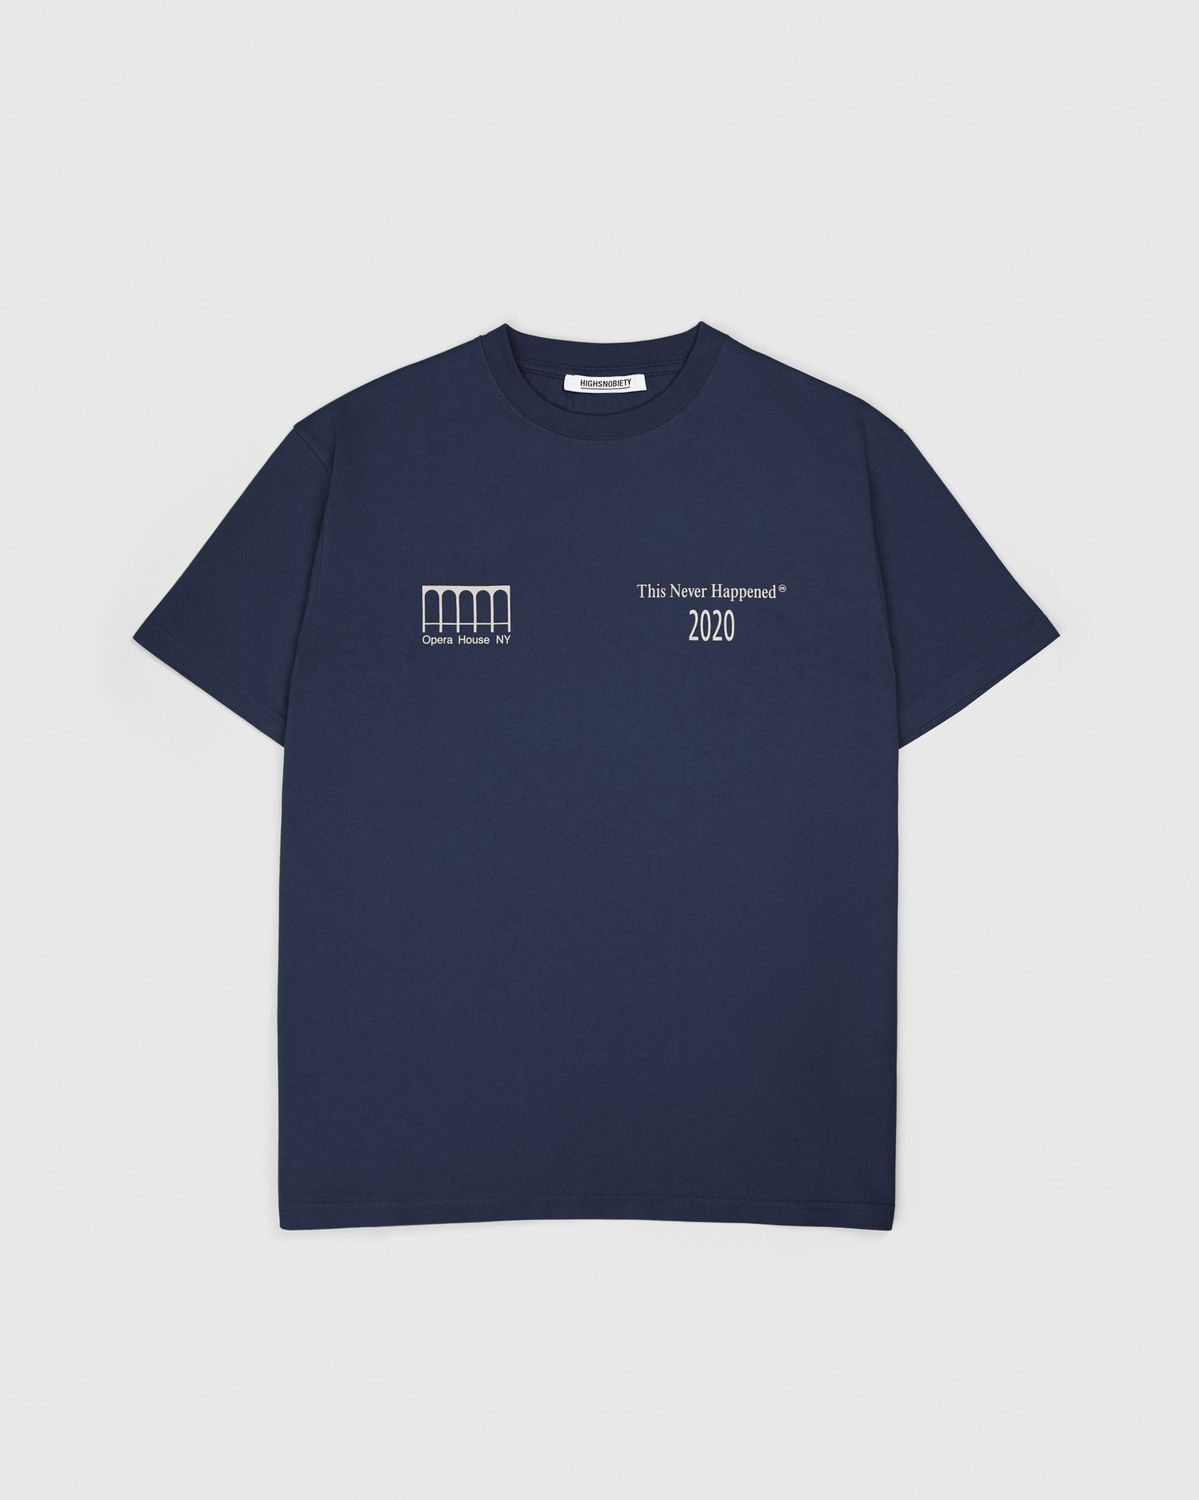 Highsnobiety —This Never Happened Opera T-Shirt Navy - Image 2